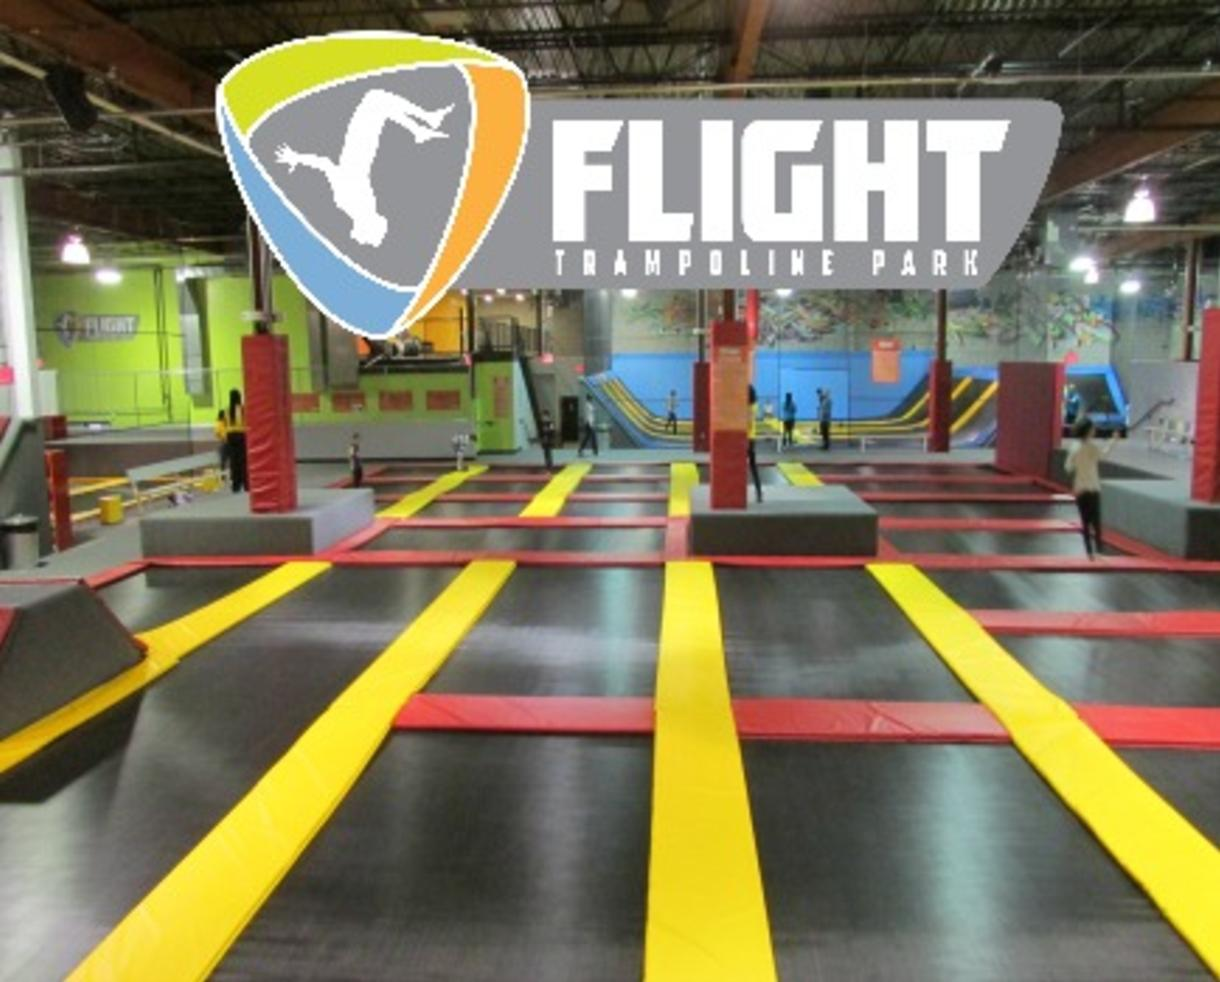 Two 60-Minute Open Jump Passes to Flight Trampoline Park